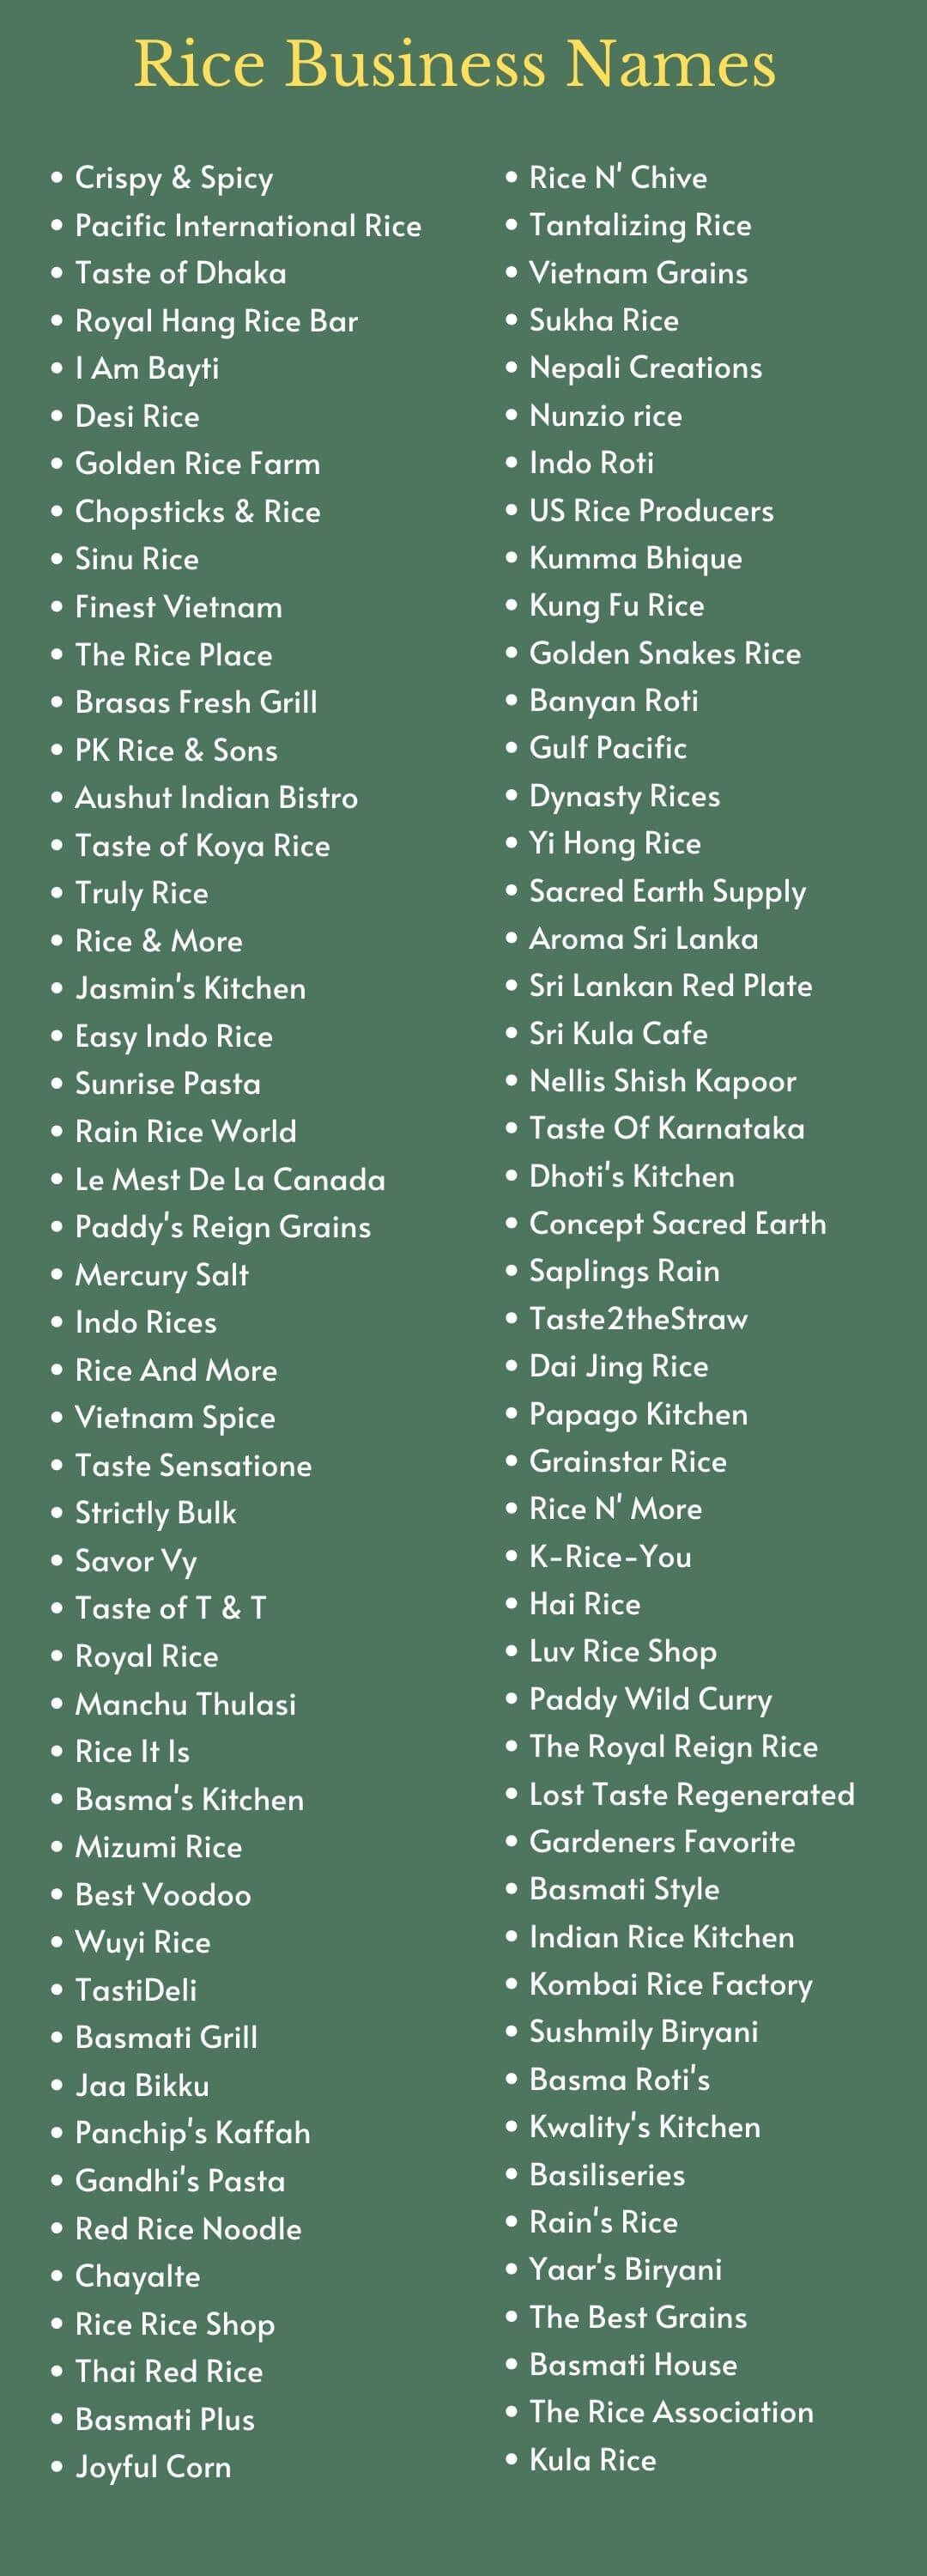 Rice Business Names: Infographic